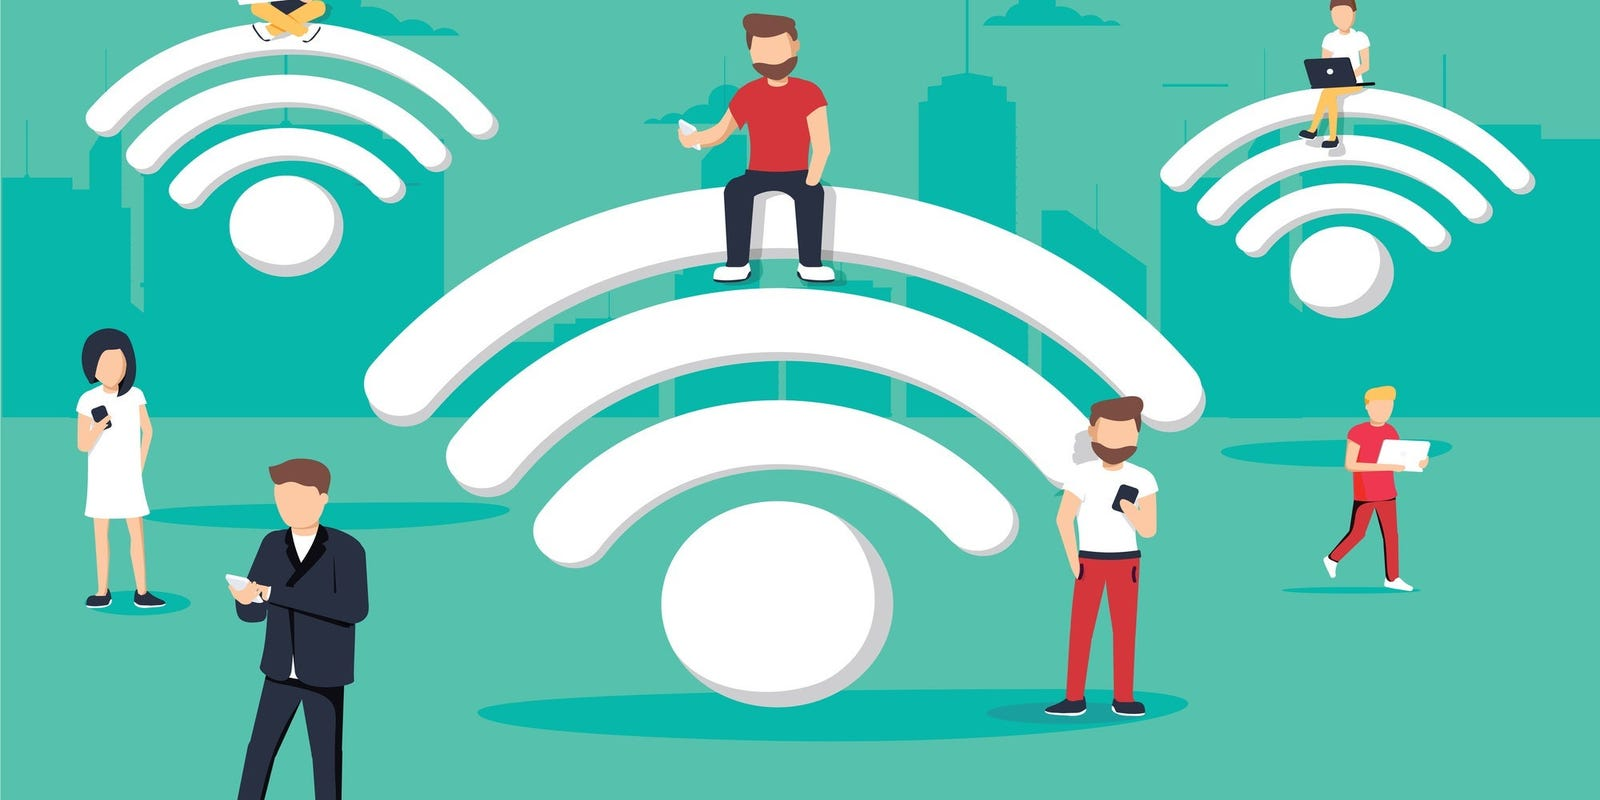 Security alert: How to make sure unauthorized devices aren't on your Wi-Fi network